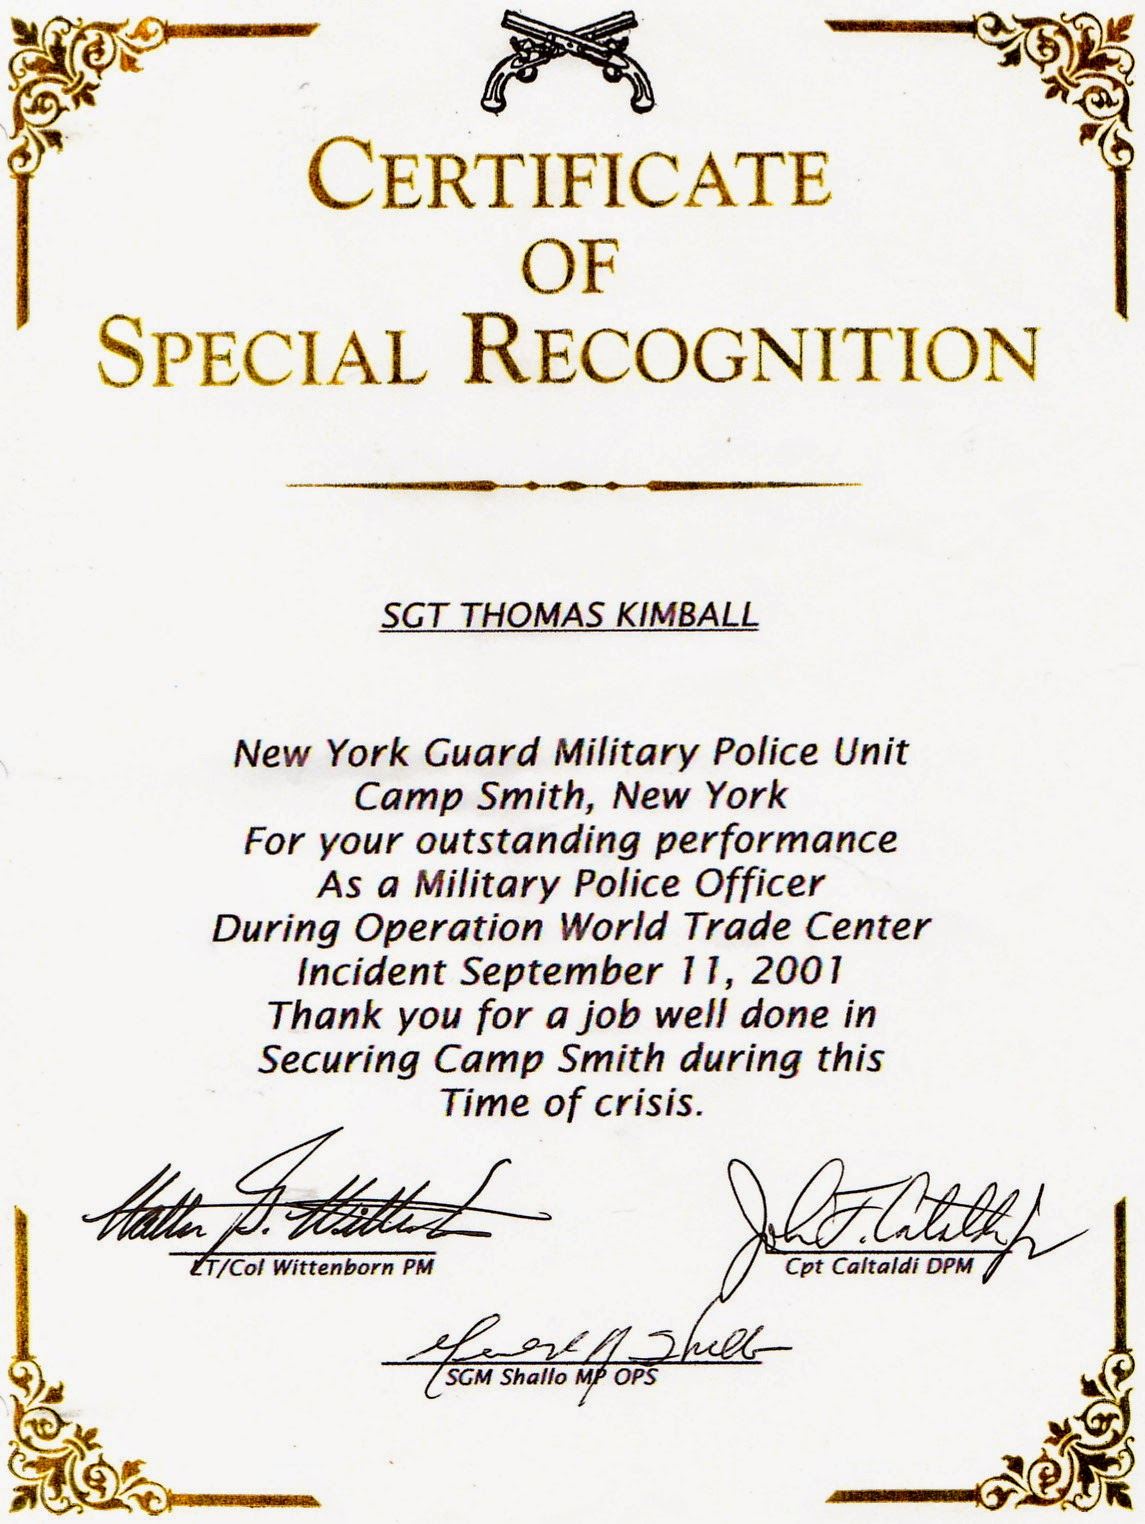 A Certificate of Special Recognition